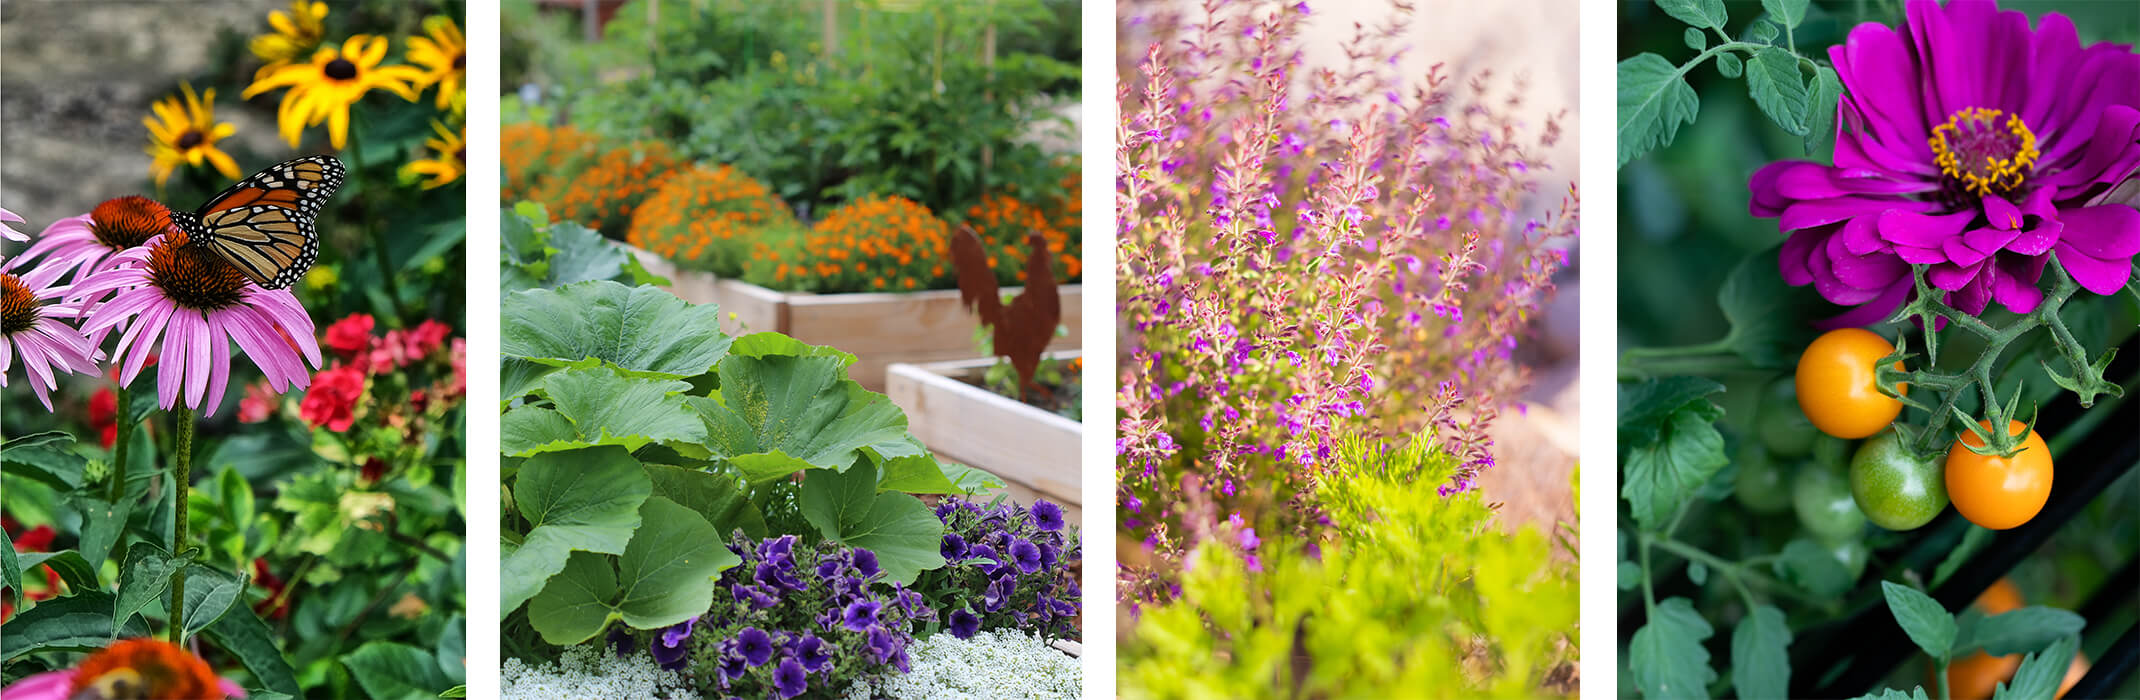 Collage with 4 picts: butterfly on echinacea in garden with other flowers, raised vegetable garden beds with  edible plants and flowers, sage planted in garden, and cherry tomatoes growing near a purple flower